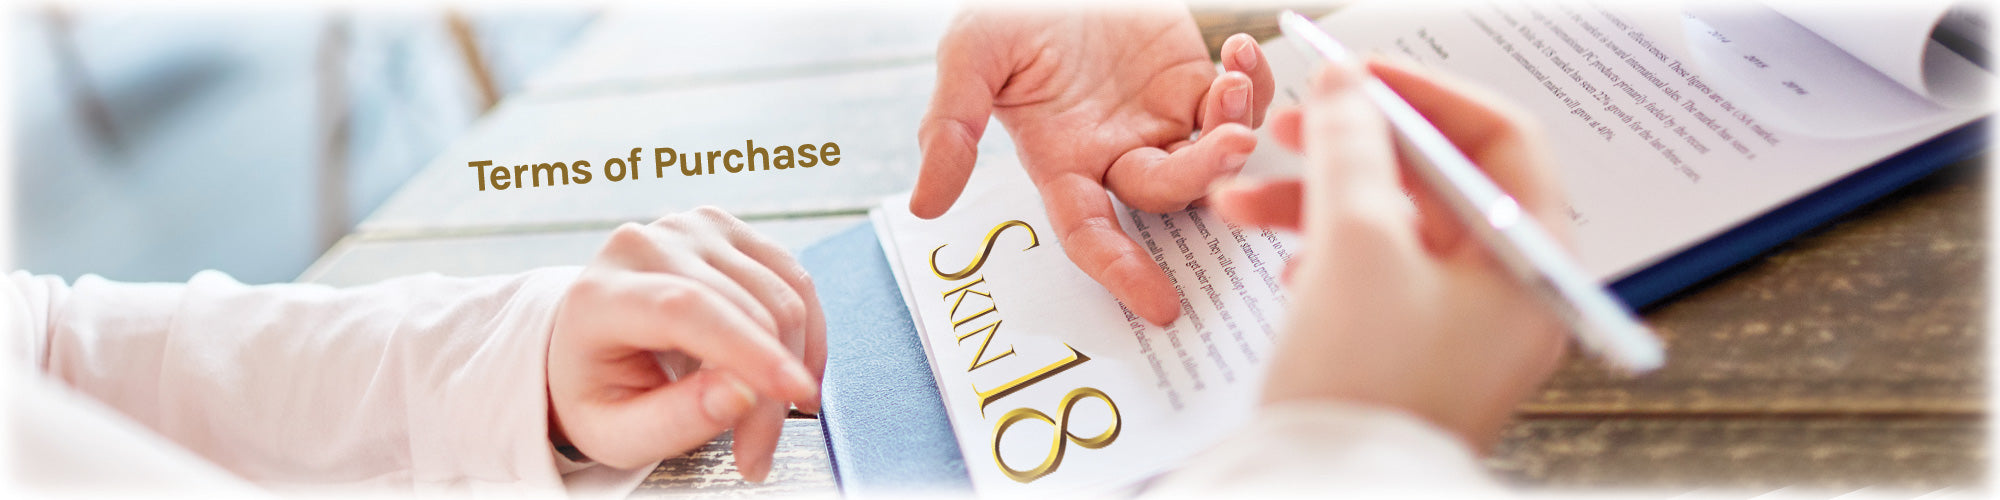 Terms of Purchase between Skin18 and customer